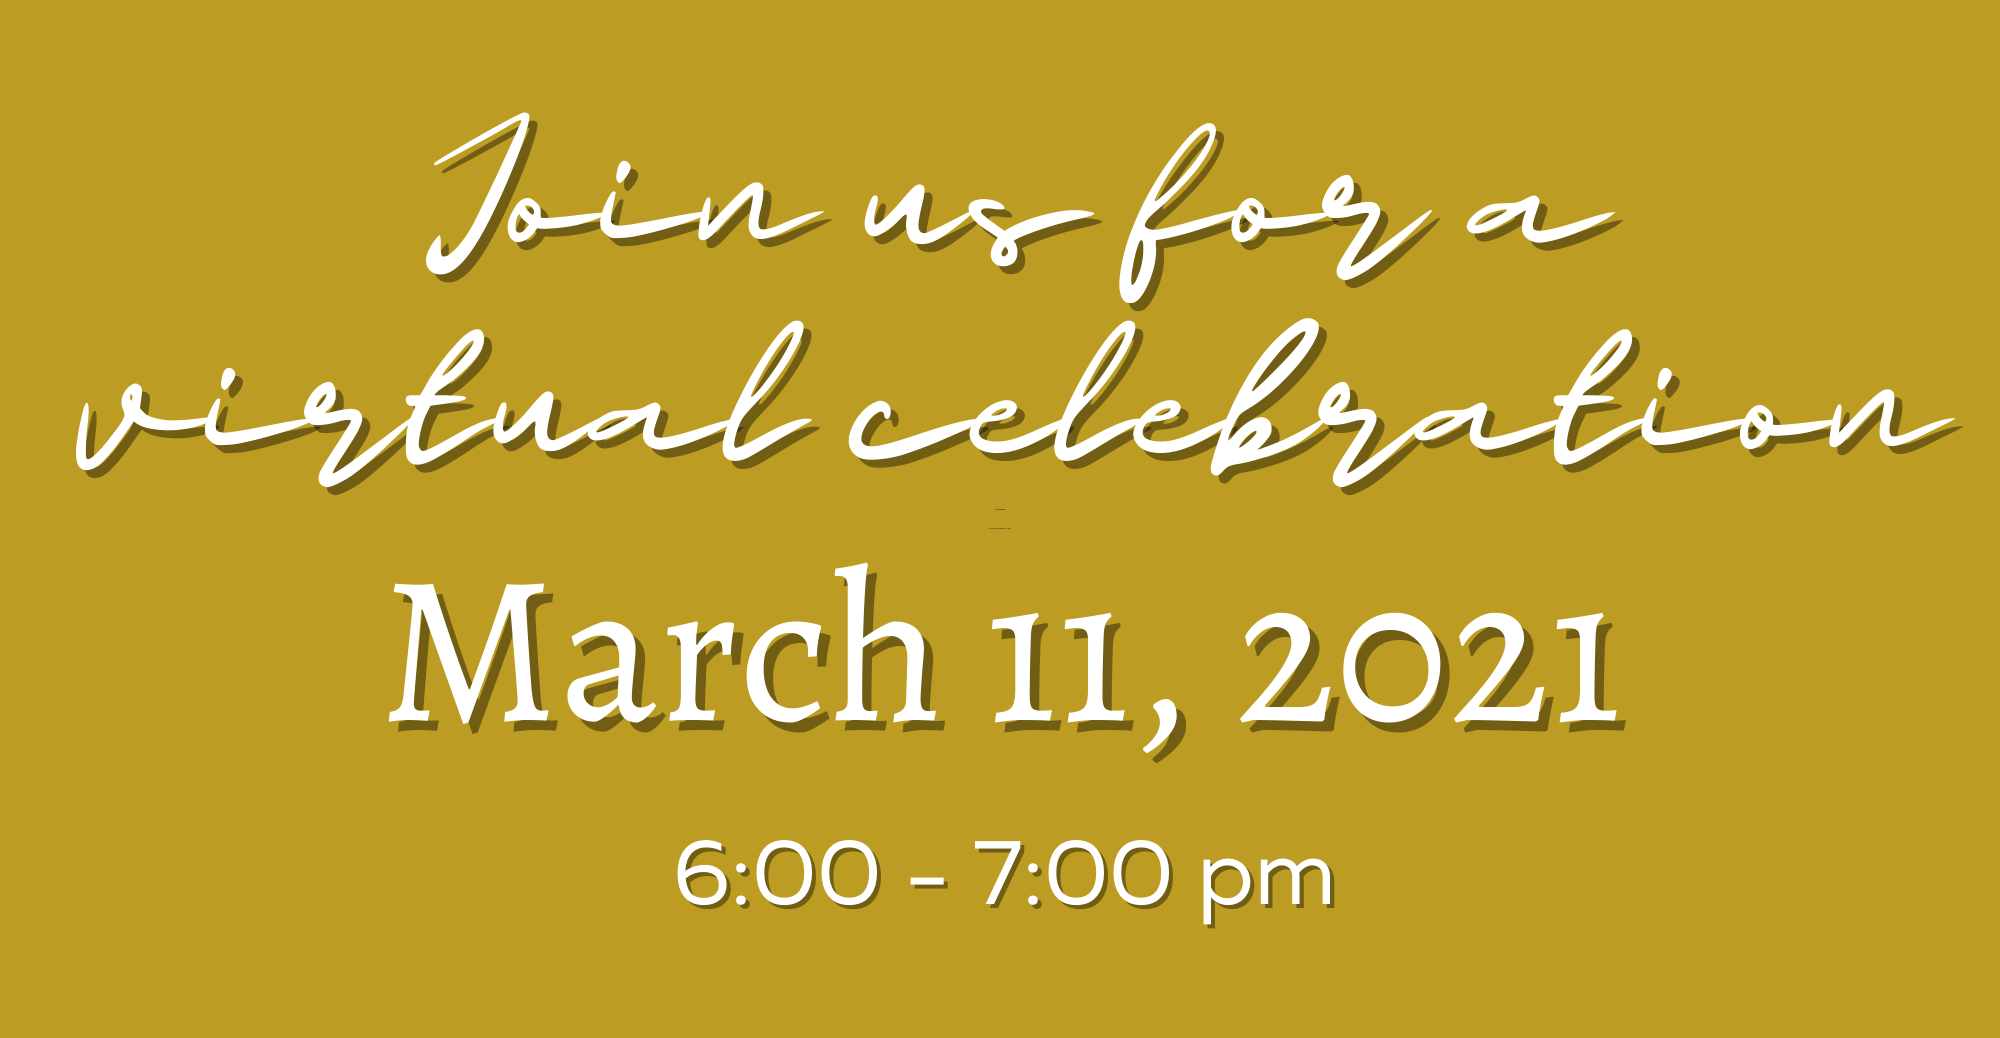 Join us for a virtual celebration! March 11, 2021 6-7pm